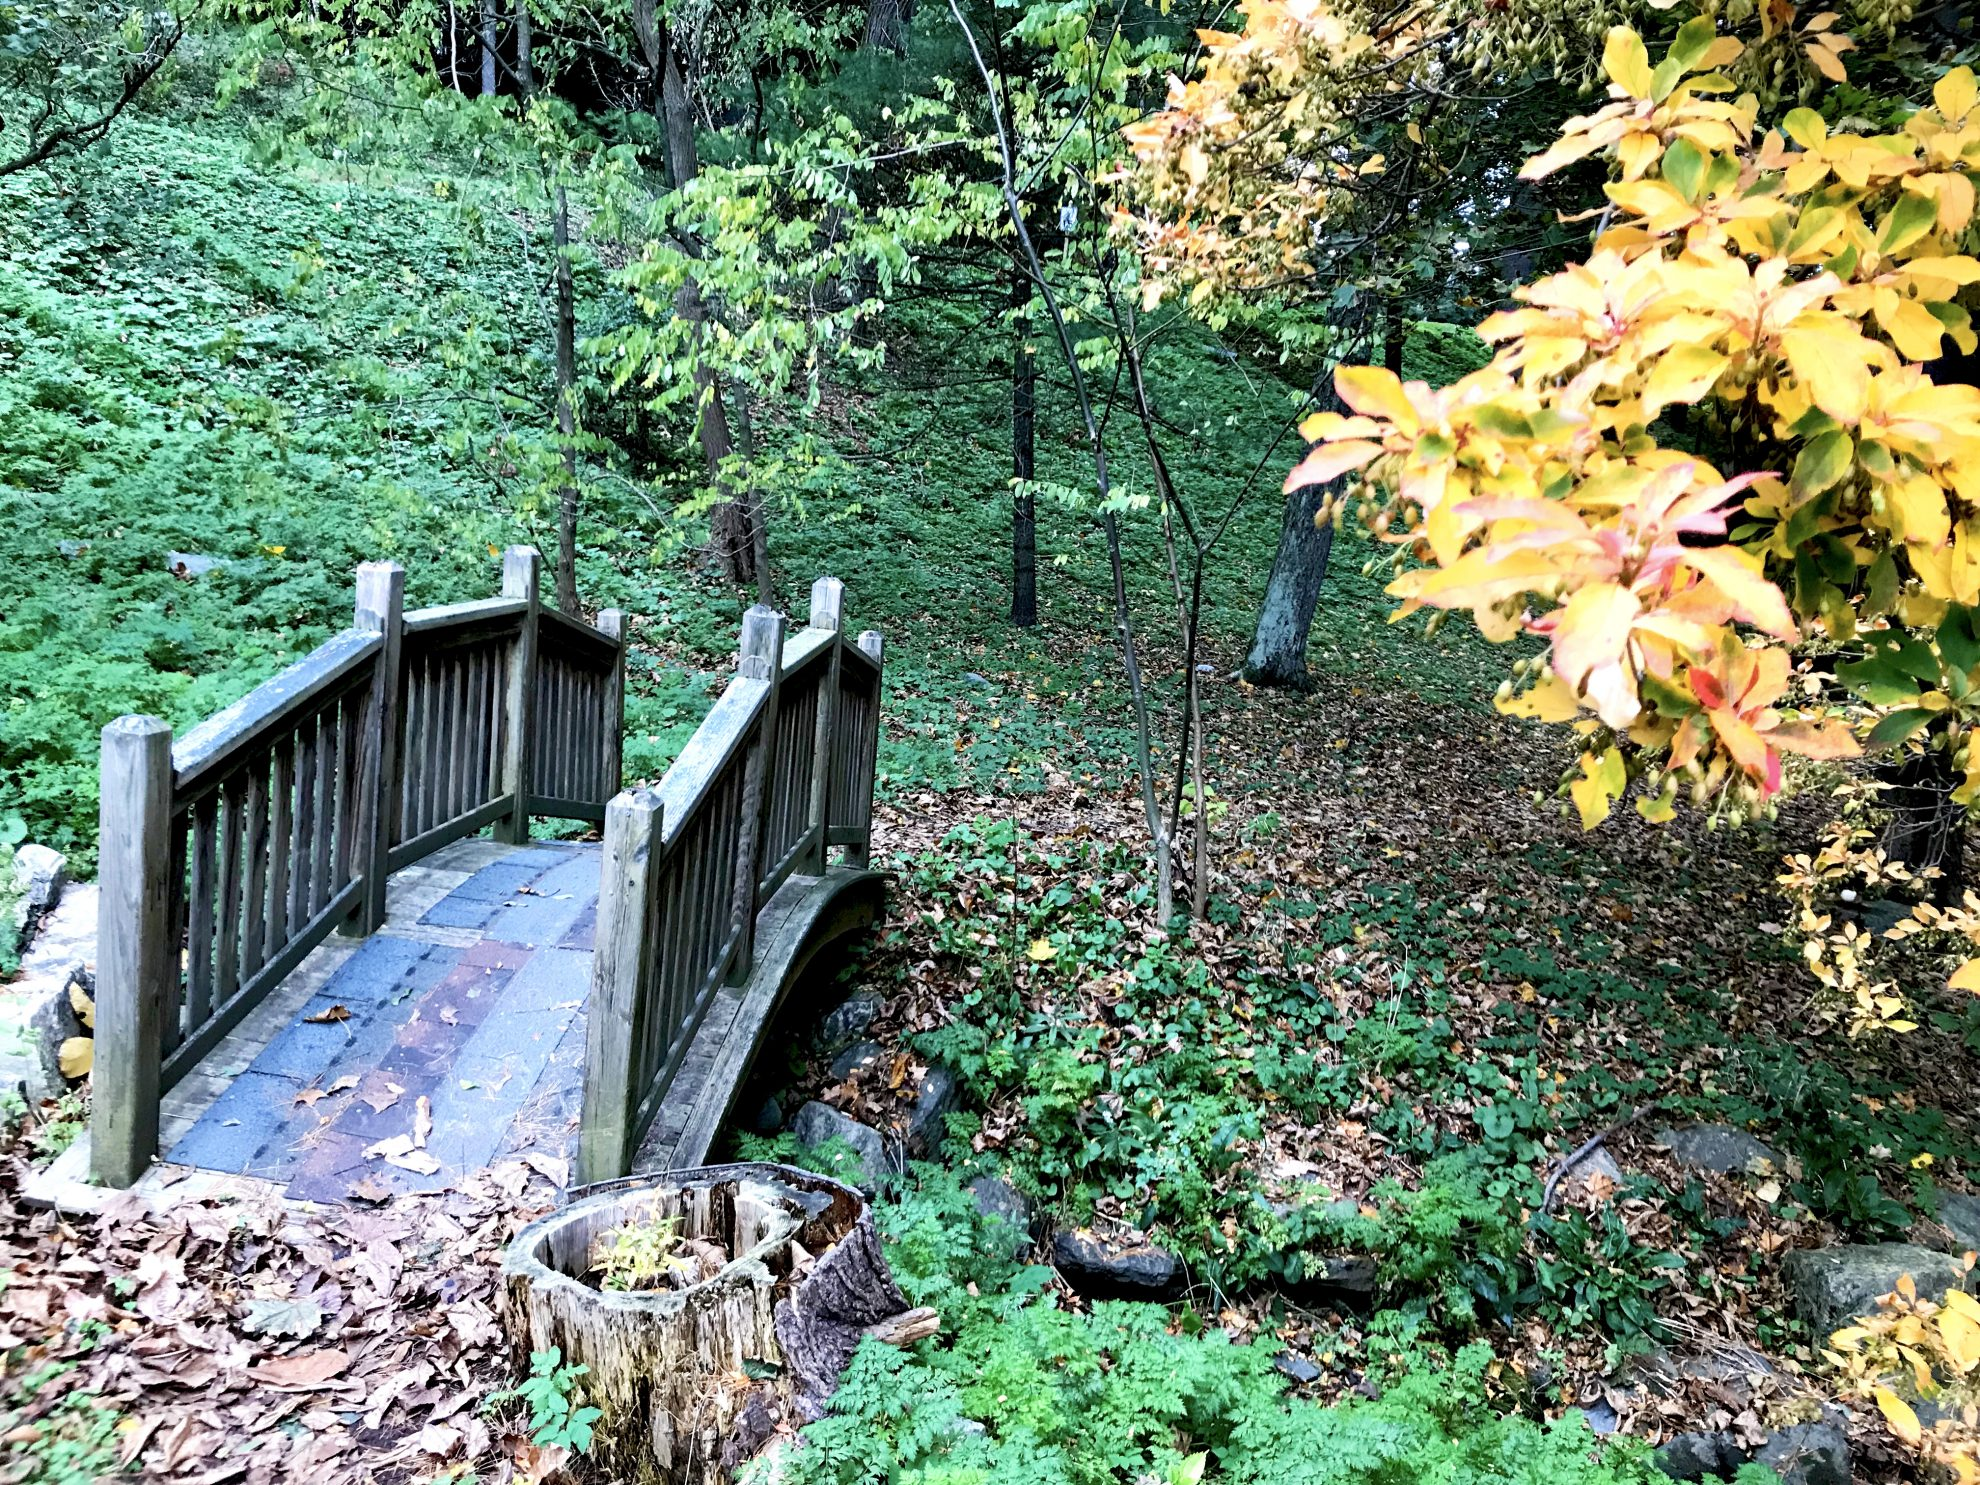 Bridge and trees that open out onto the hiking trail at Kripalu Center for Yoga and Health